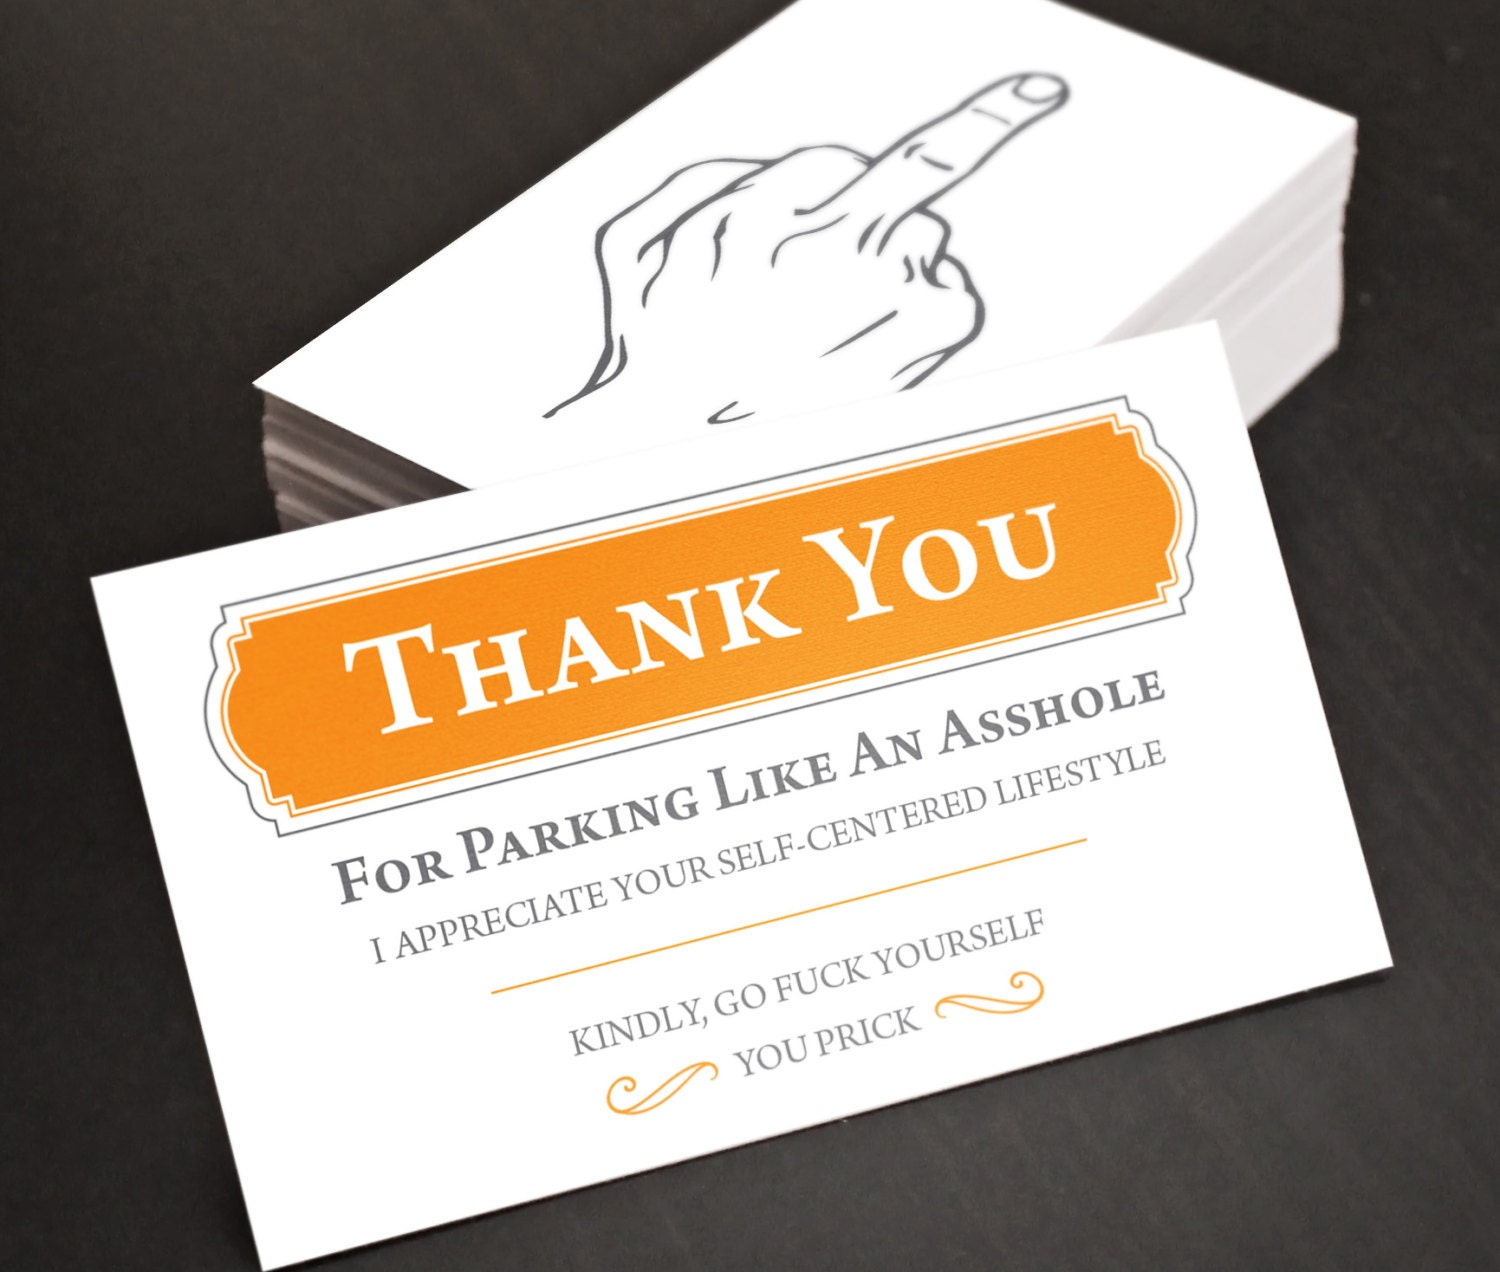 Bad Parking Cards Middle Finger Funny budget gift for Dad